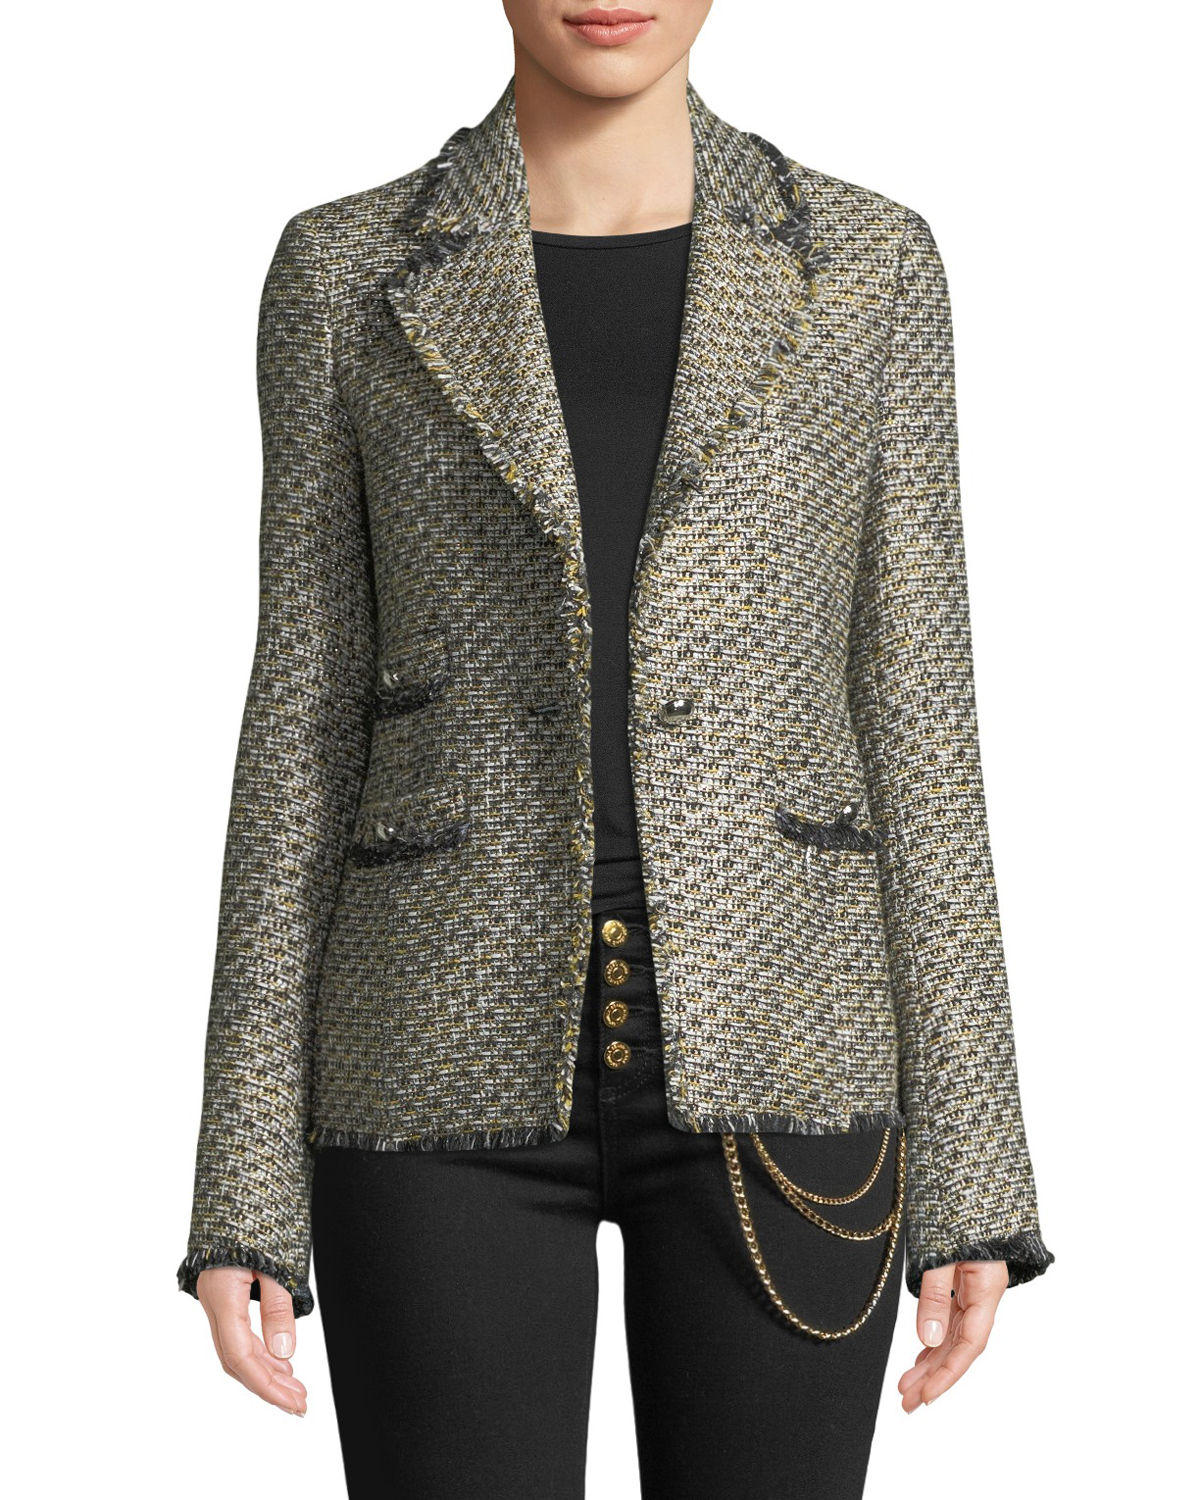 Fabian Tweed Single Button Jacket by Veronica Beard